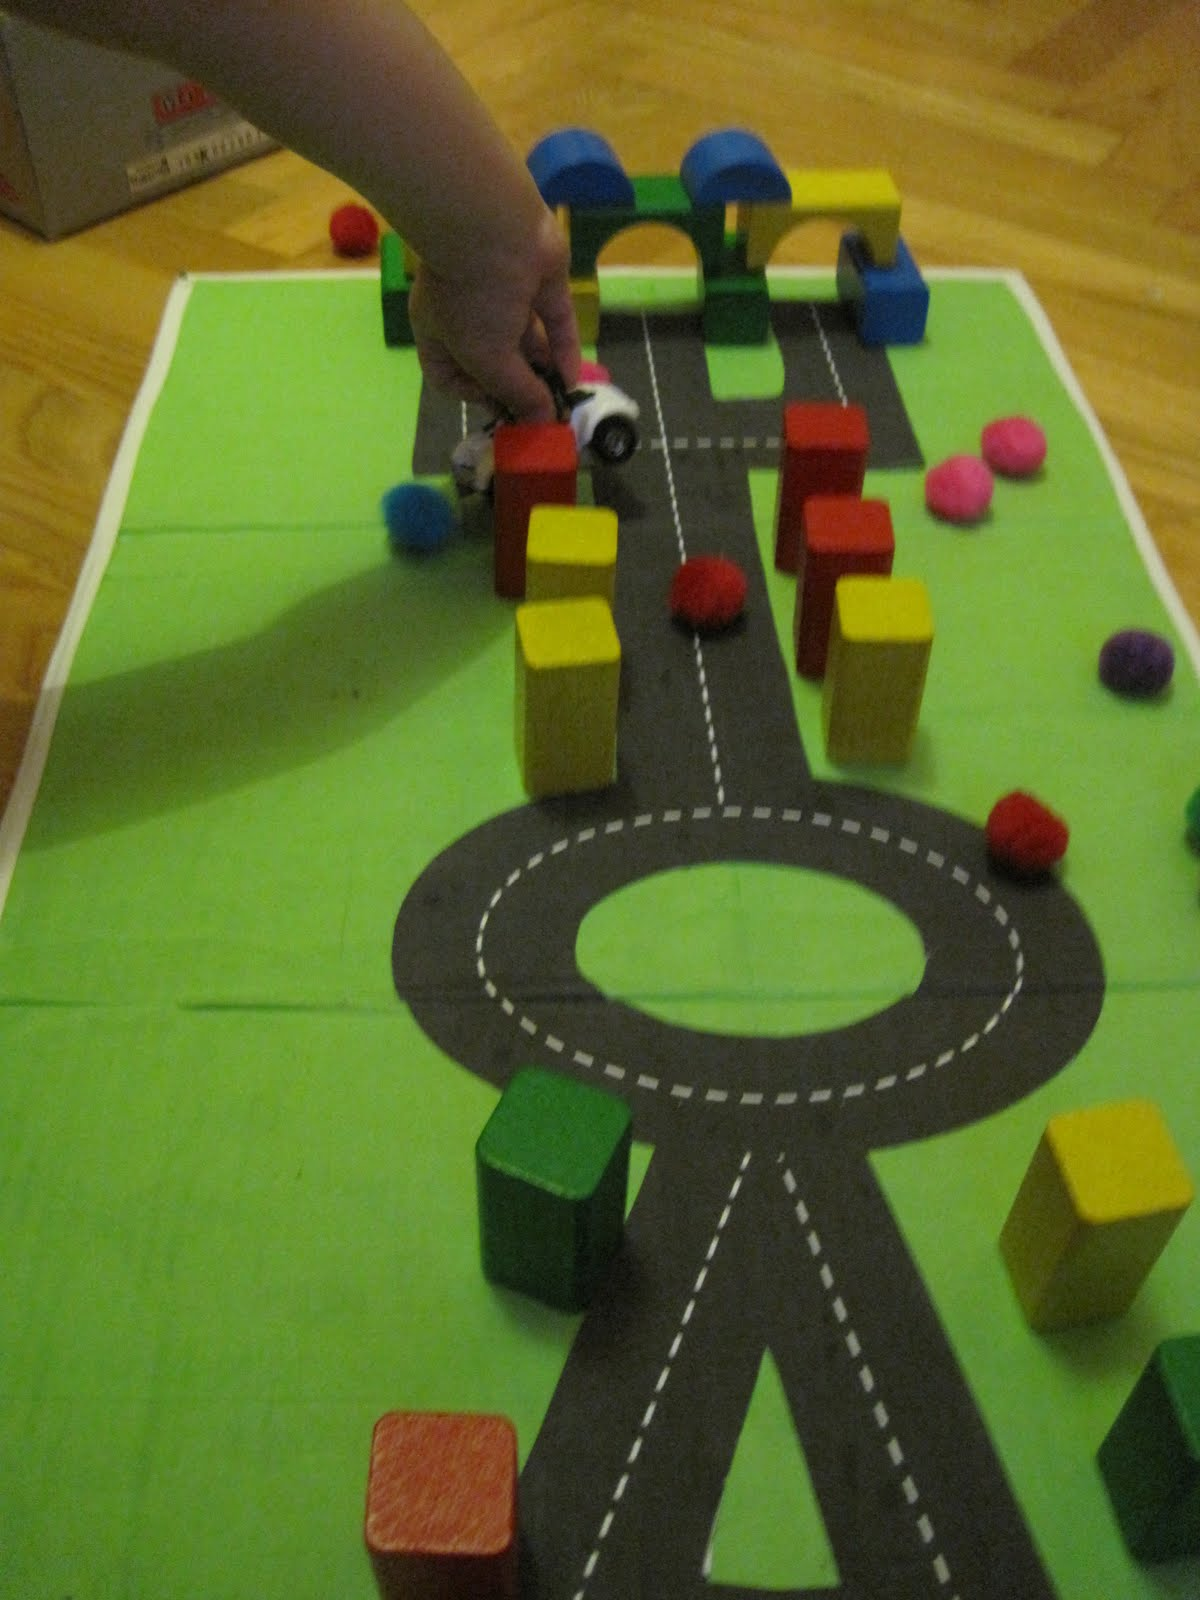 Best Toys for Toddlers DIY Toys Ride Around Playmat